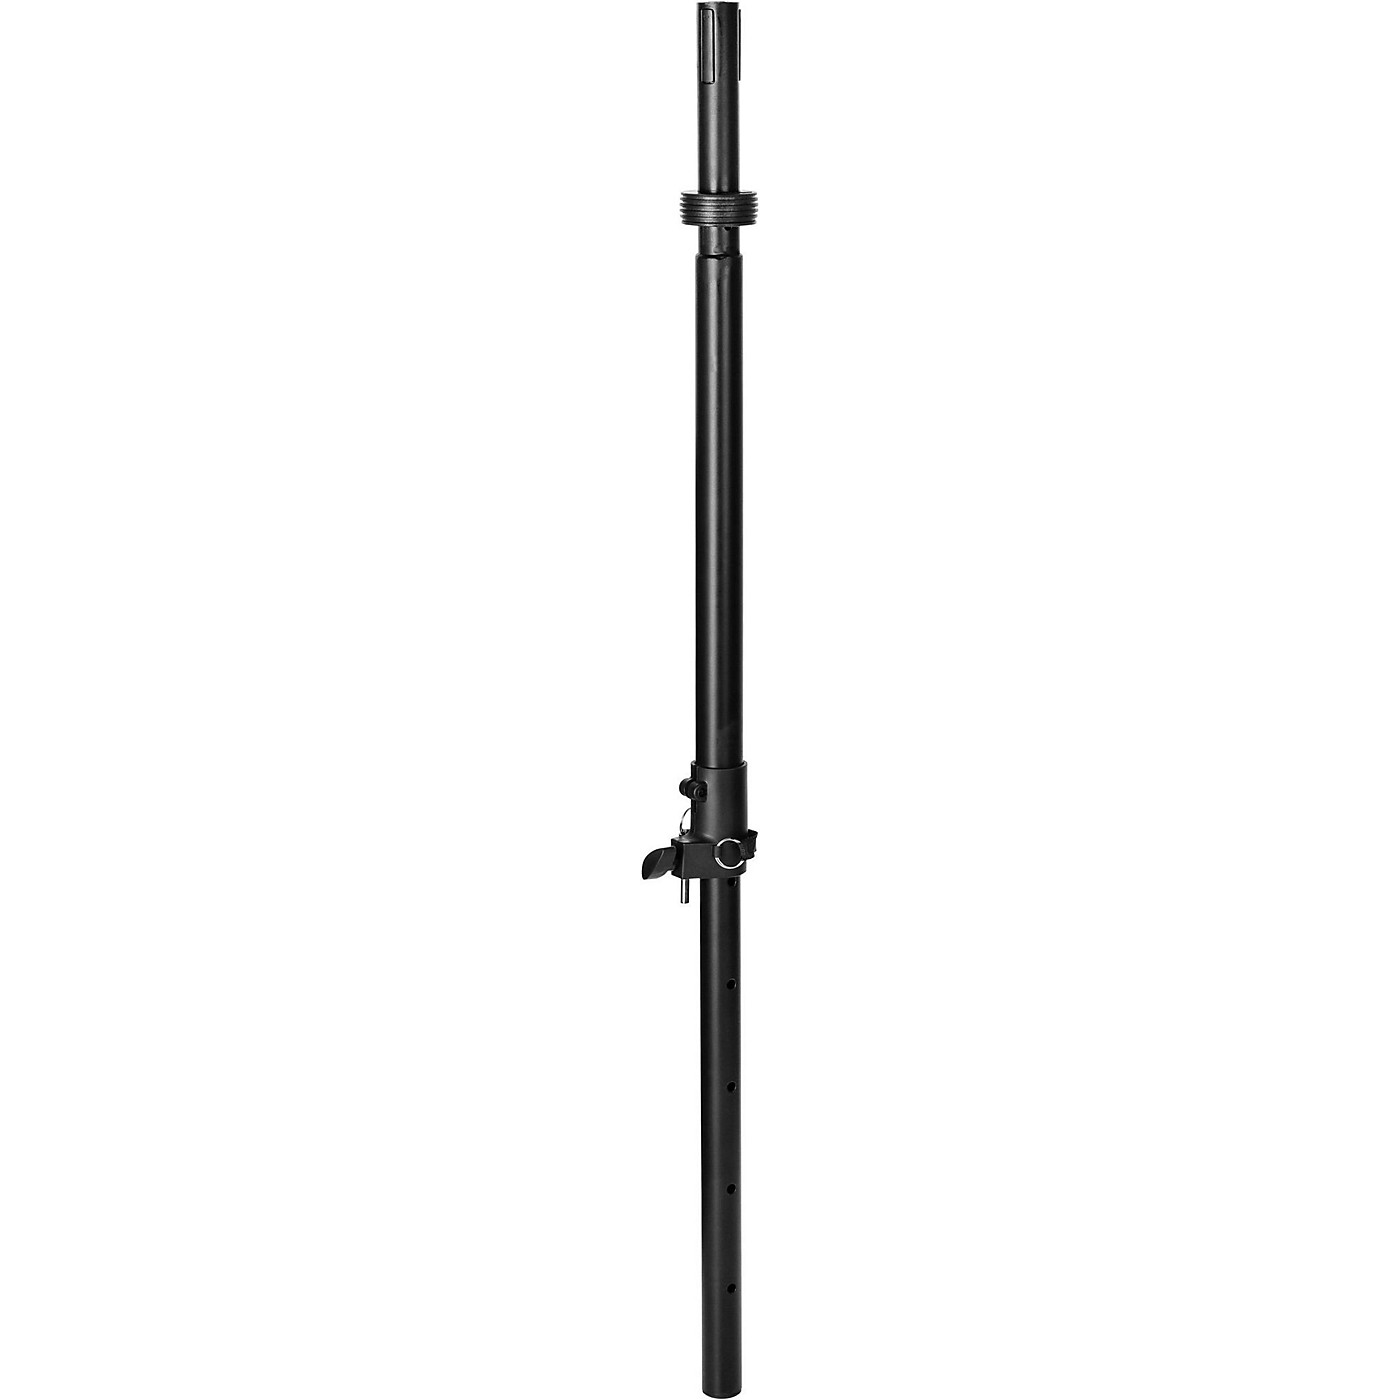 On-Stage Speaker Sub Pole With Locking Adapter thumbnail